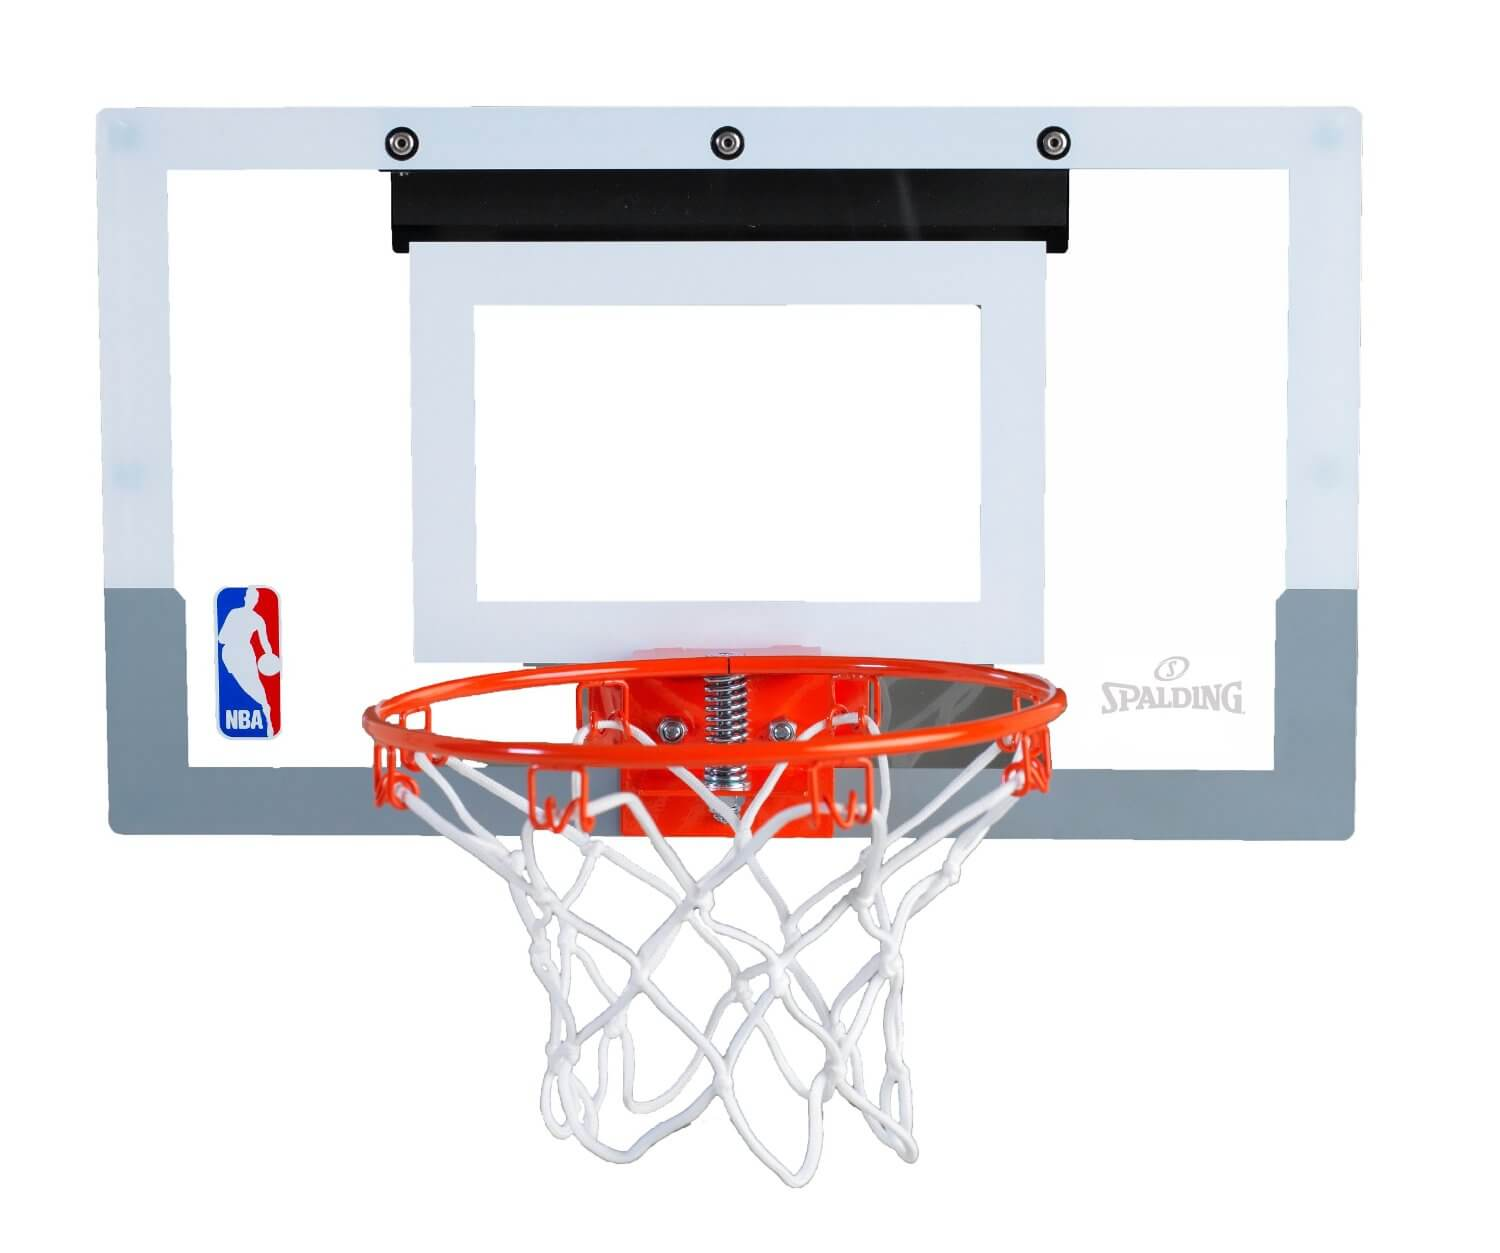 Horrible Kids Outdoorbasketball Basketball Hoops Kids Is Spalding Nba Slamjam Mini Basketball Breakaway Rim Is Similar To One Seen On Basketball Hoops Anor One baby Fisher Price Basketball Hoop